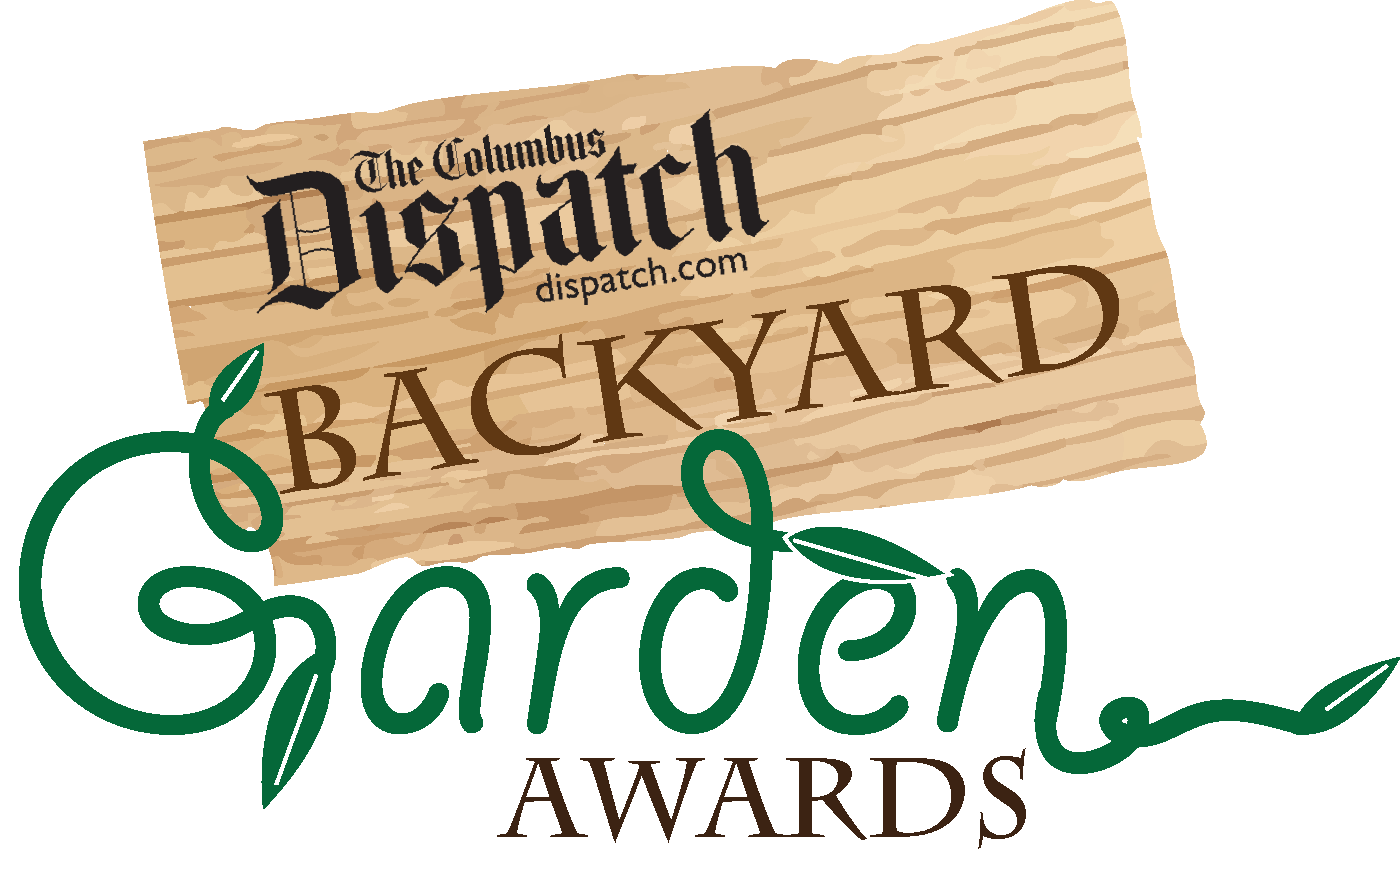 Dispatch_Backyard Garden Awards_logo_FINAL (1).png